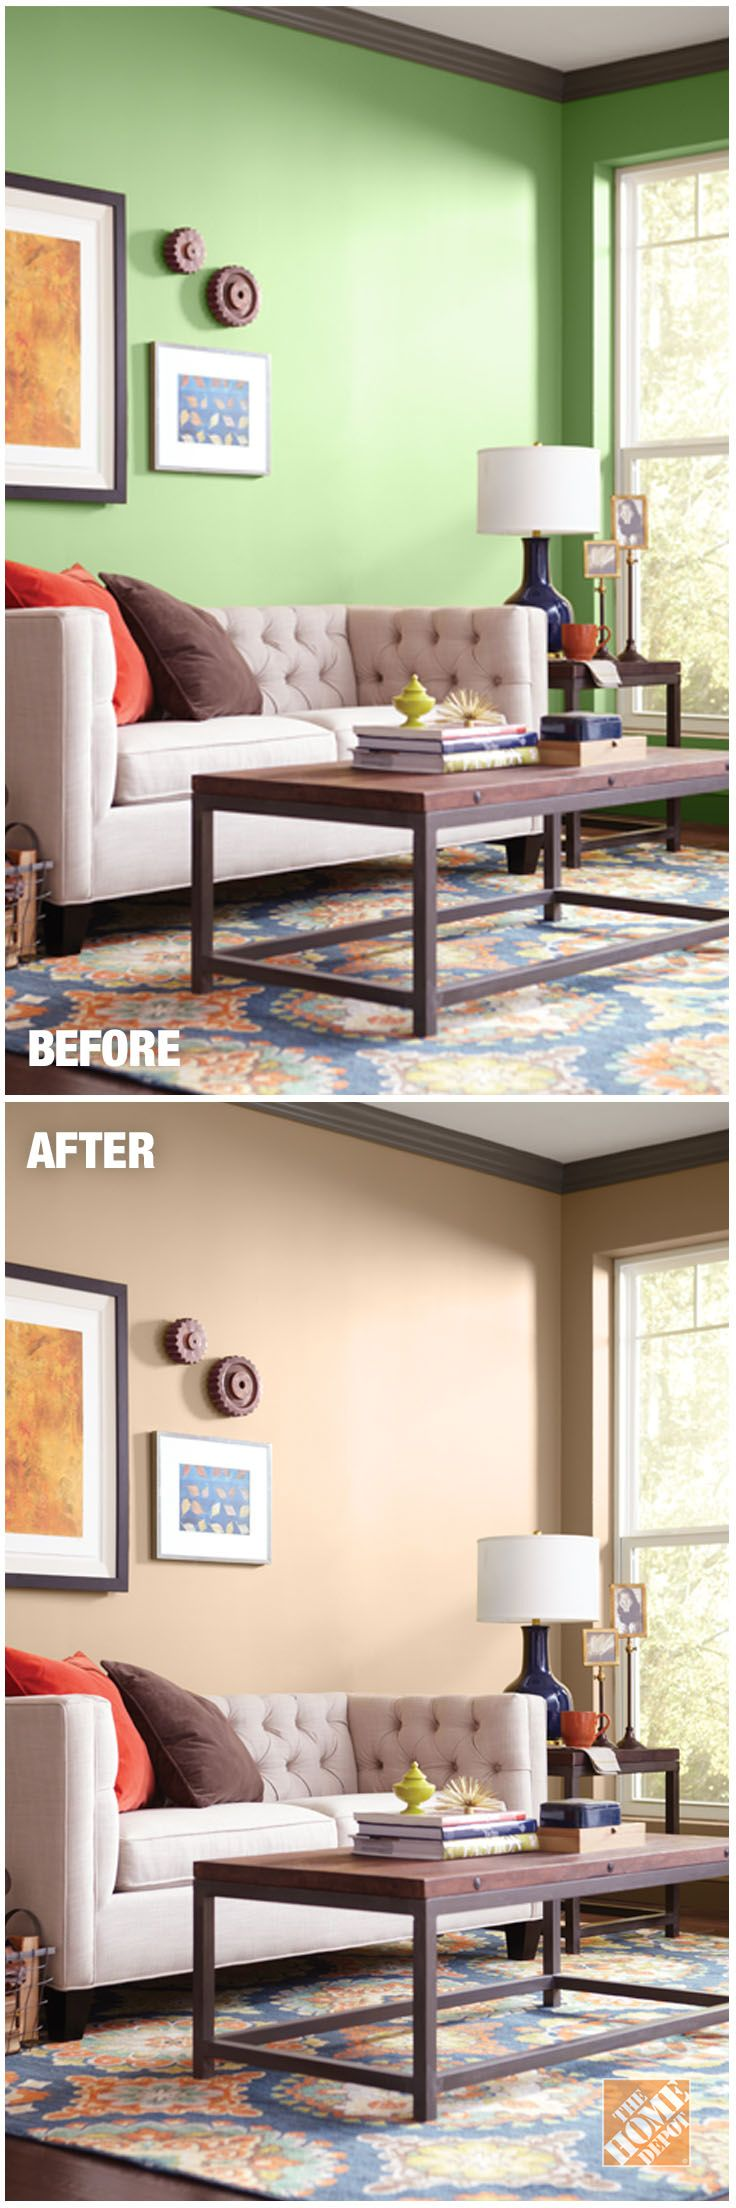 behr paint can give a room a whole new look explore on on home depot behr paint colors interior id=17026